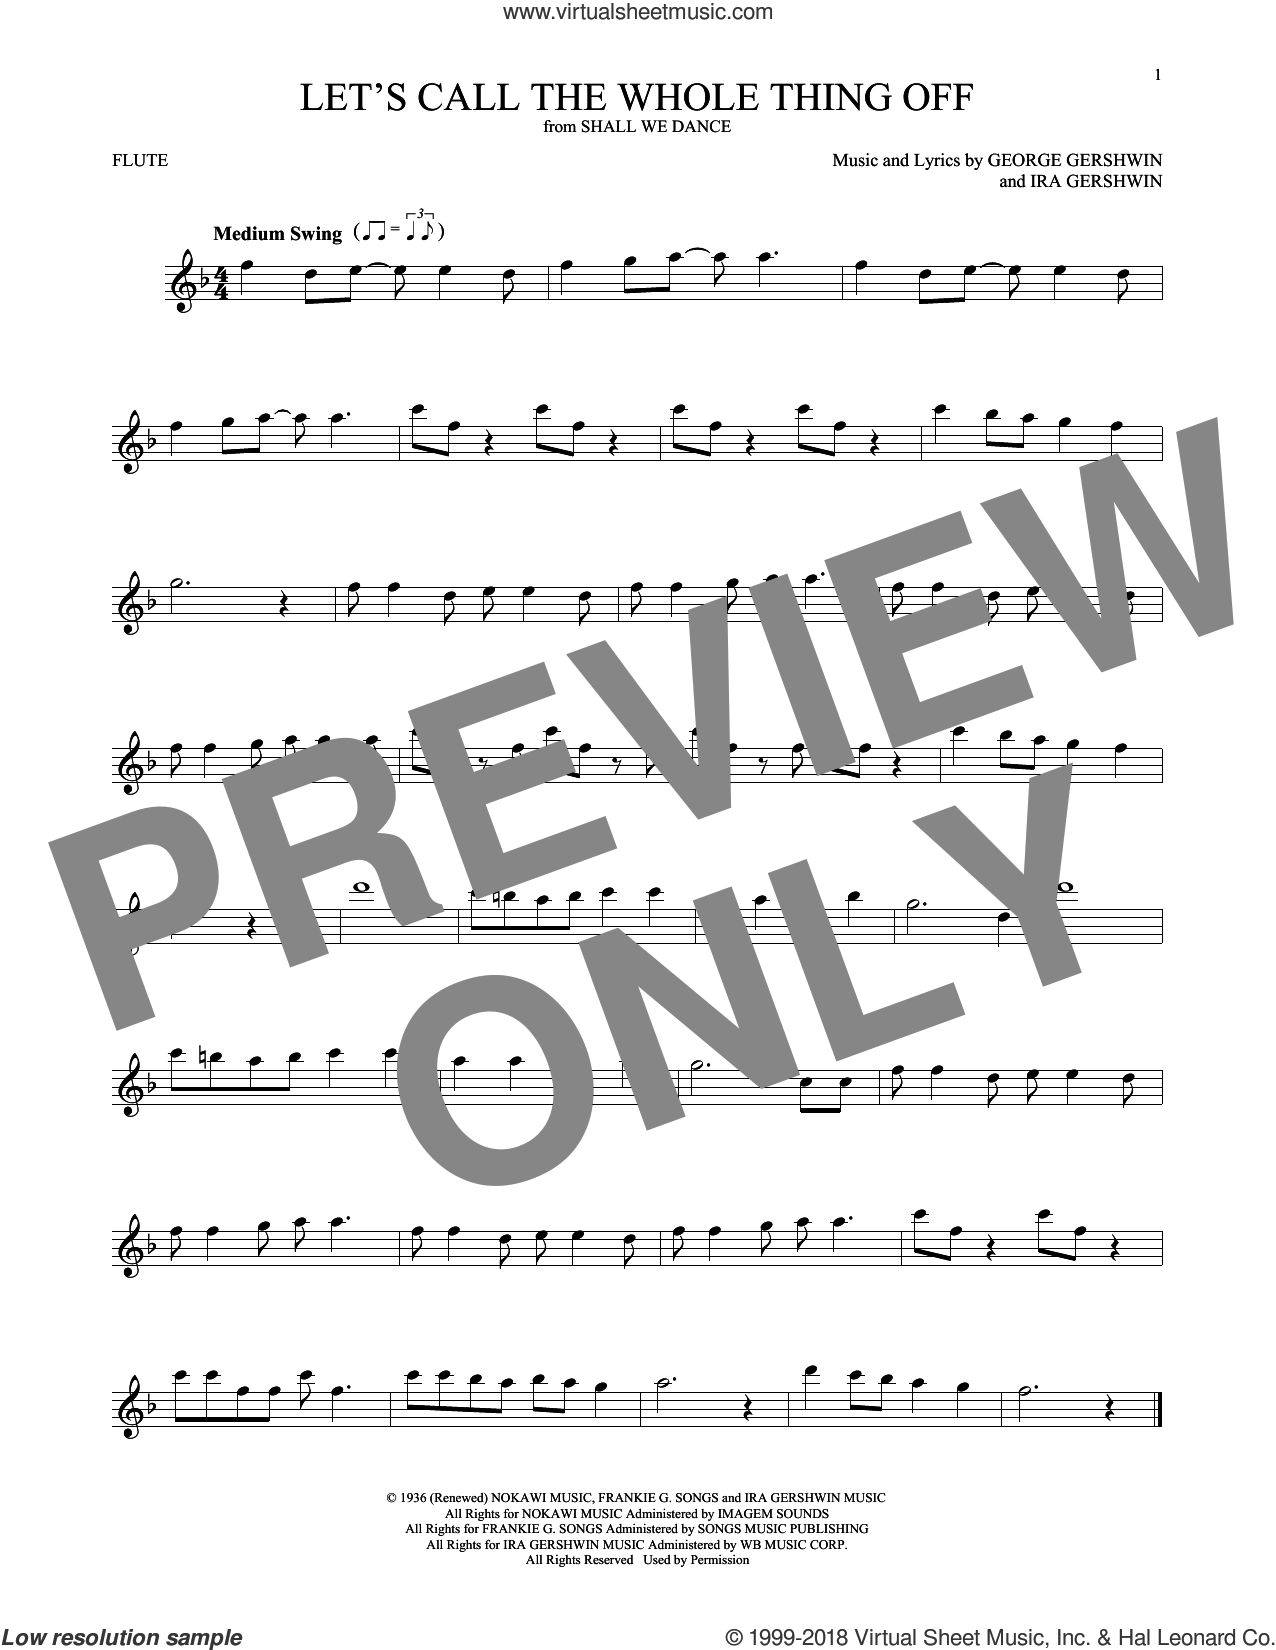 Let's Call The Whole Thing Off sheet music for flute solo by George Gershwin and Ira Gershwin, intermediate. Score Image Preview.